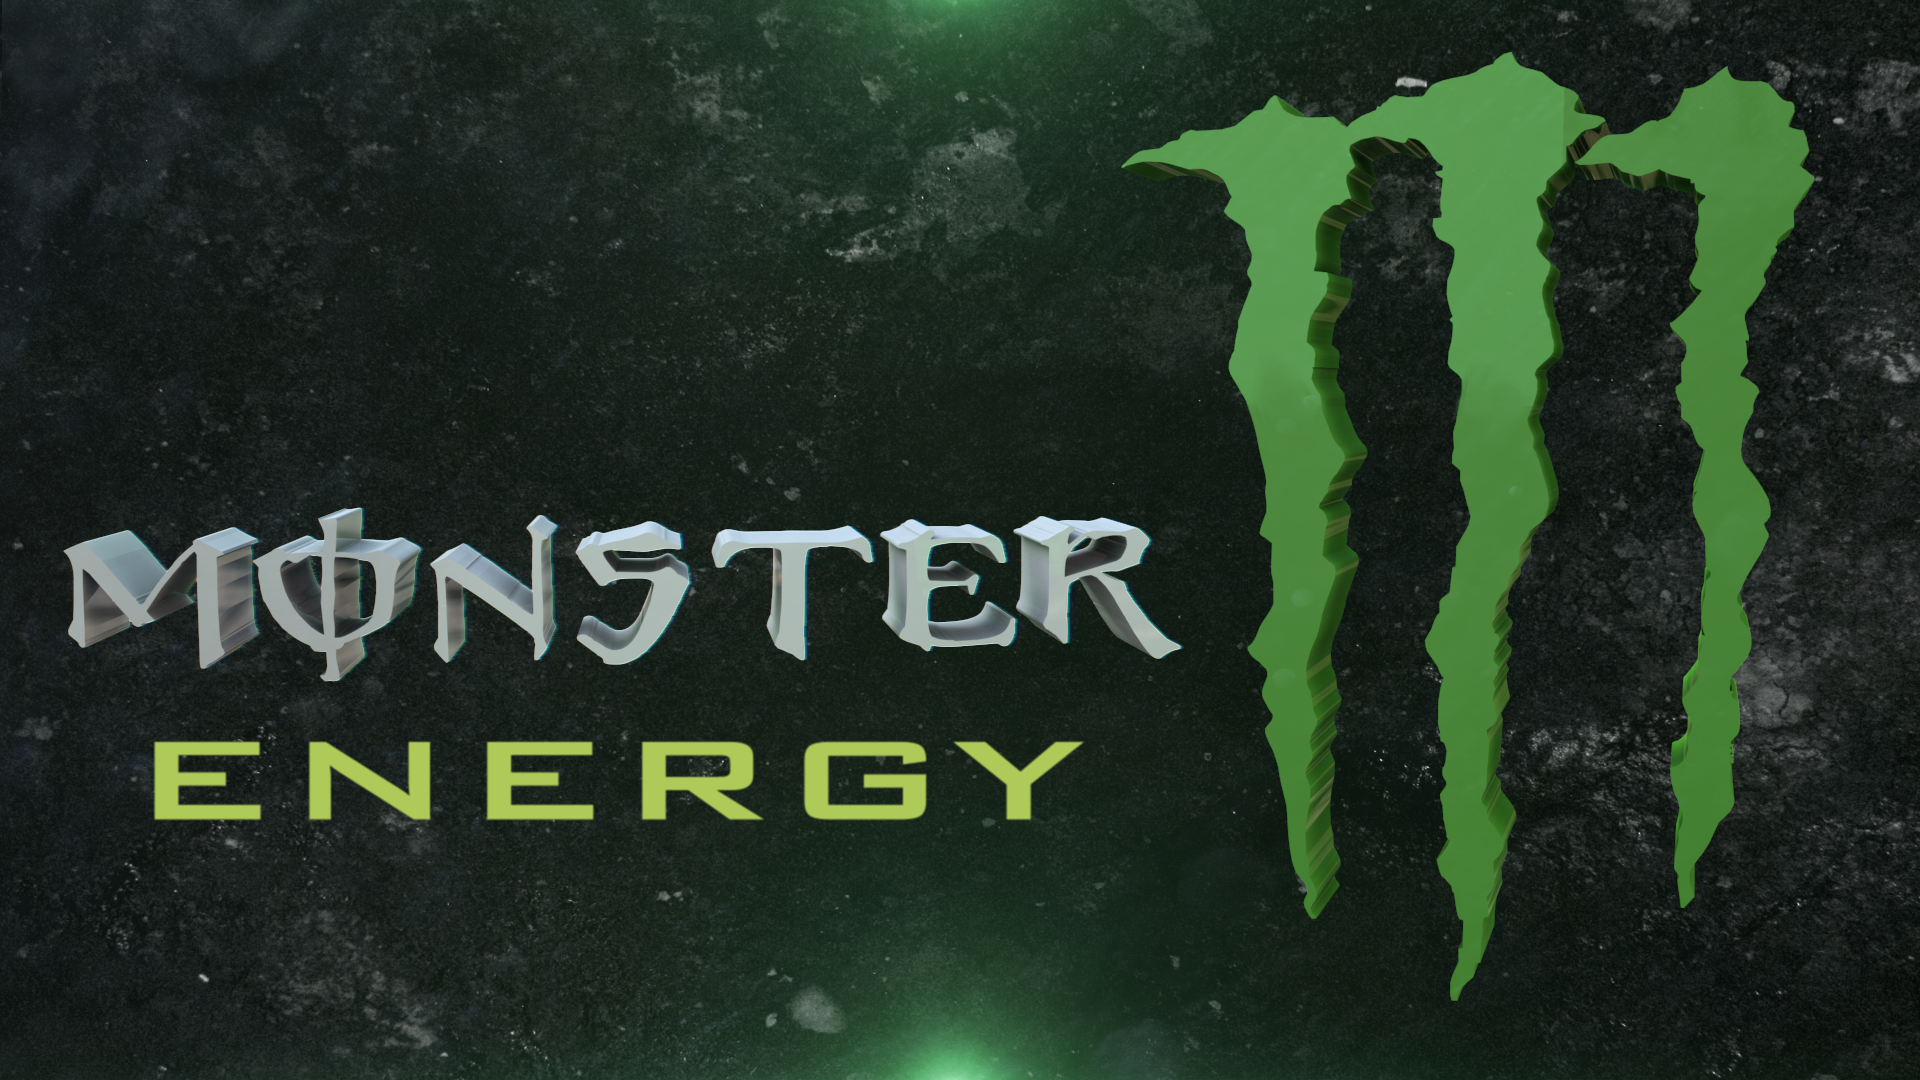 Description Monster Energy 3D Wallpaper is a hi res Wallpaper for pc 1920x1080